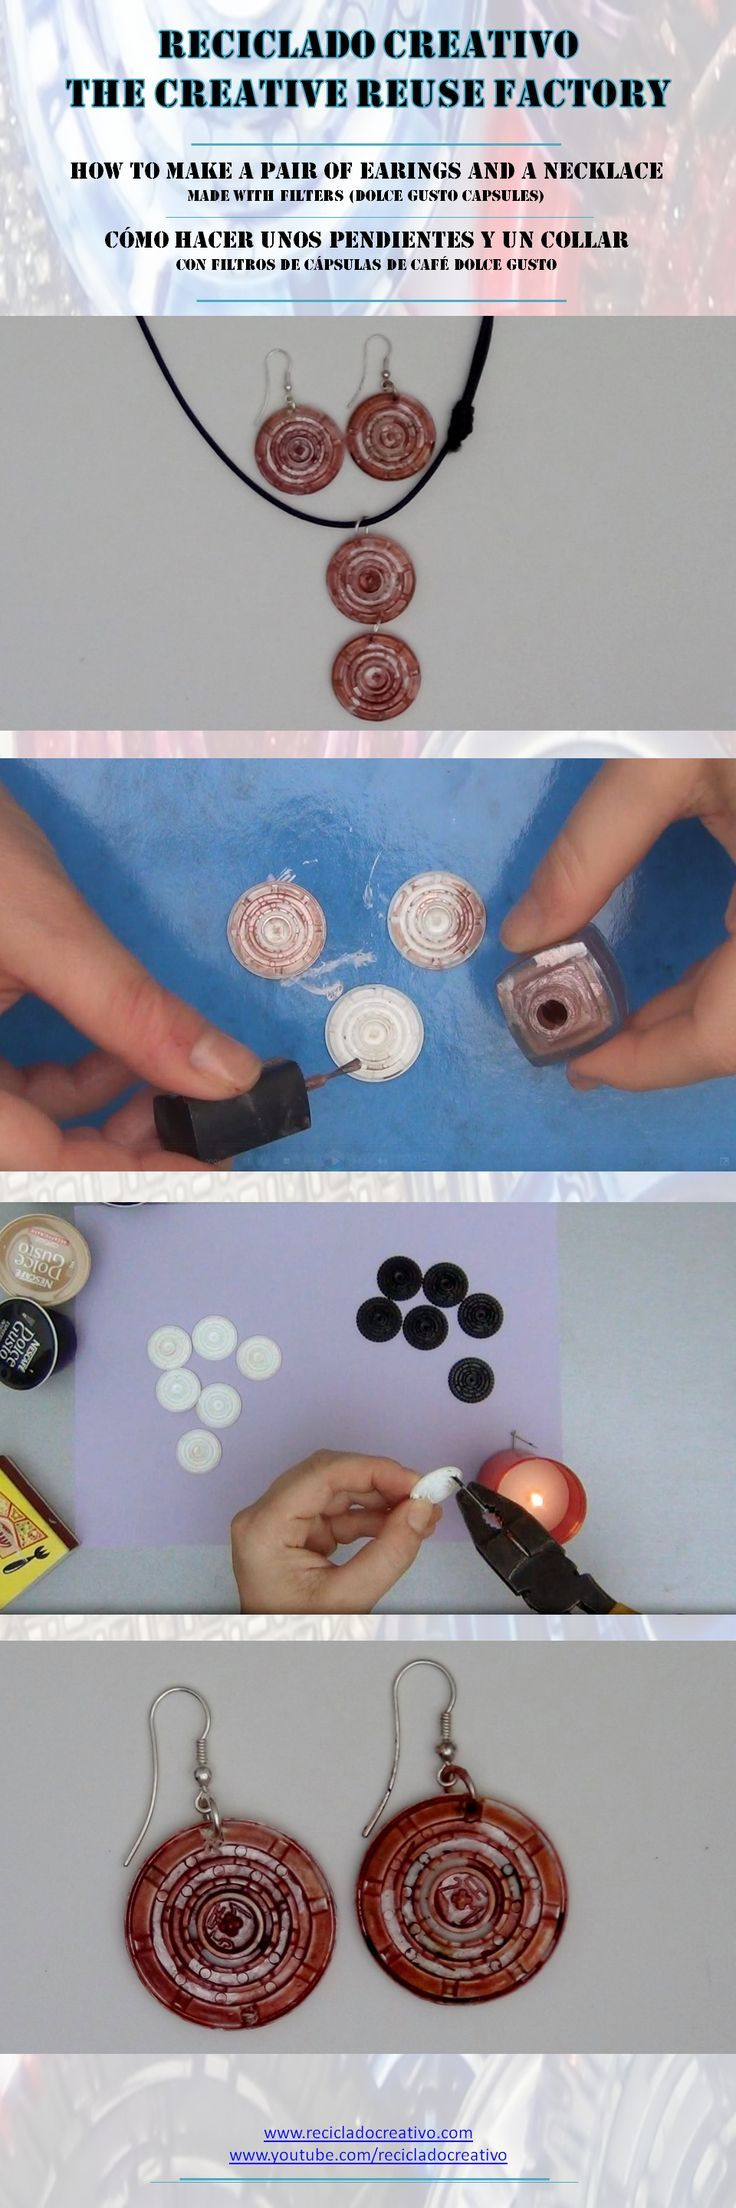 How to make a pair of earings and a necklace with recycled filters (Dolce Gusto Capsules) - Cómo hacer un par de pendientes y un collar con filtros (Cápsulas de café Dolce Gusto)